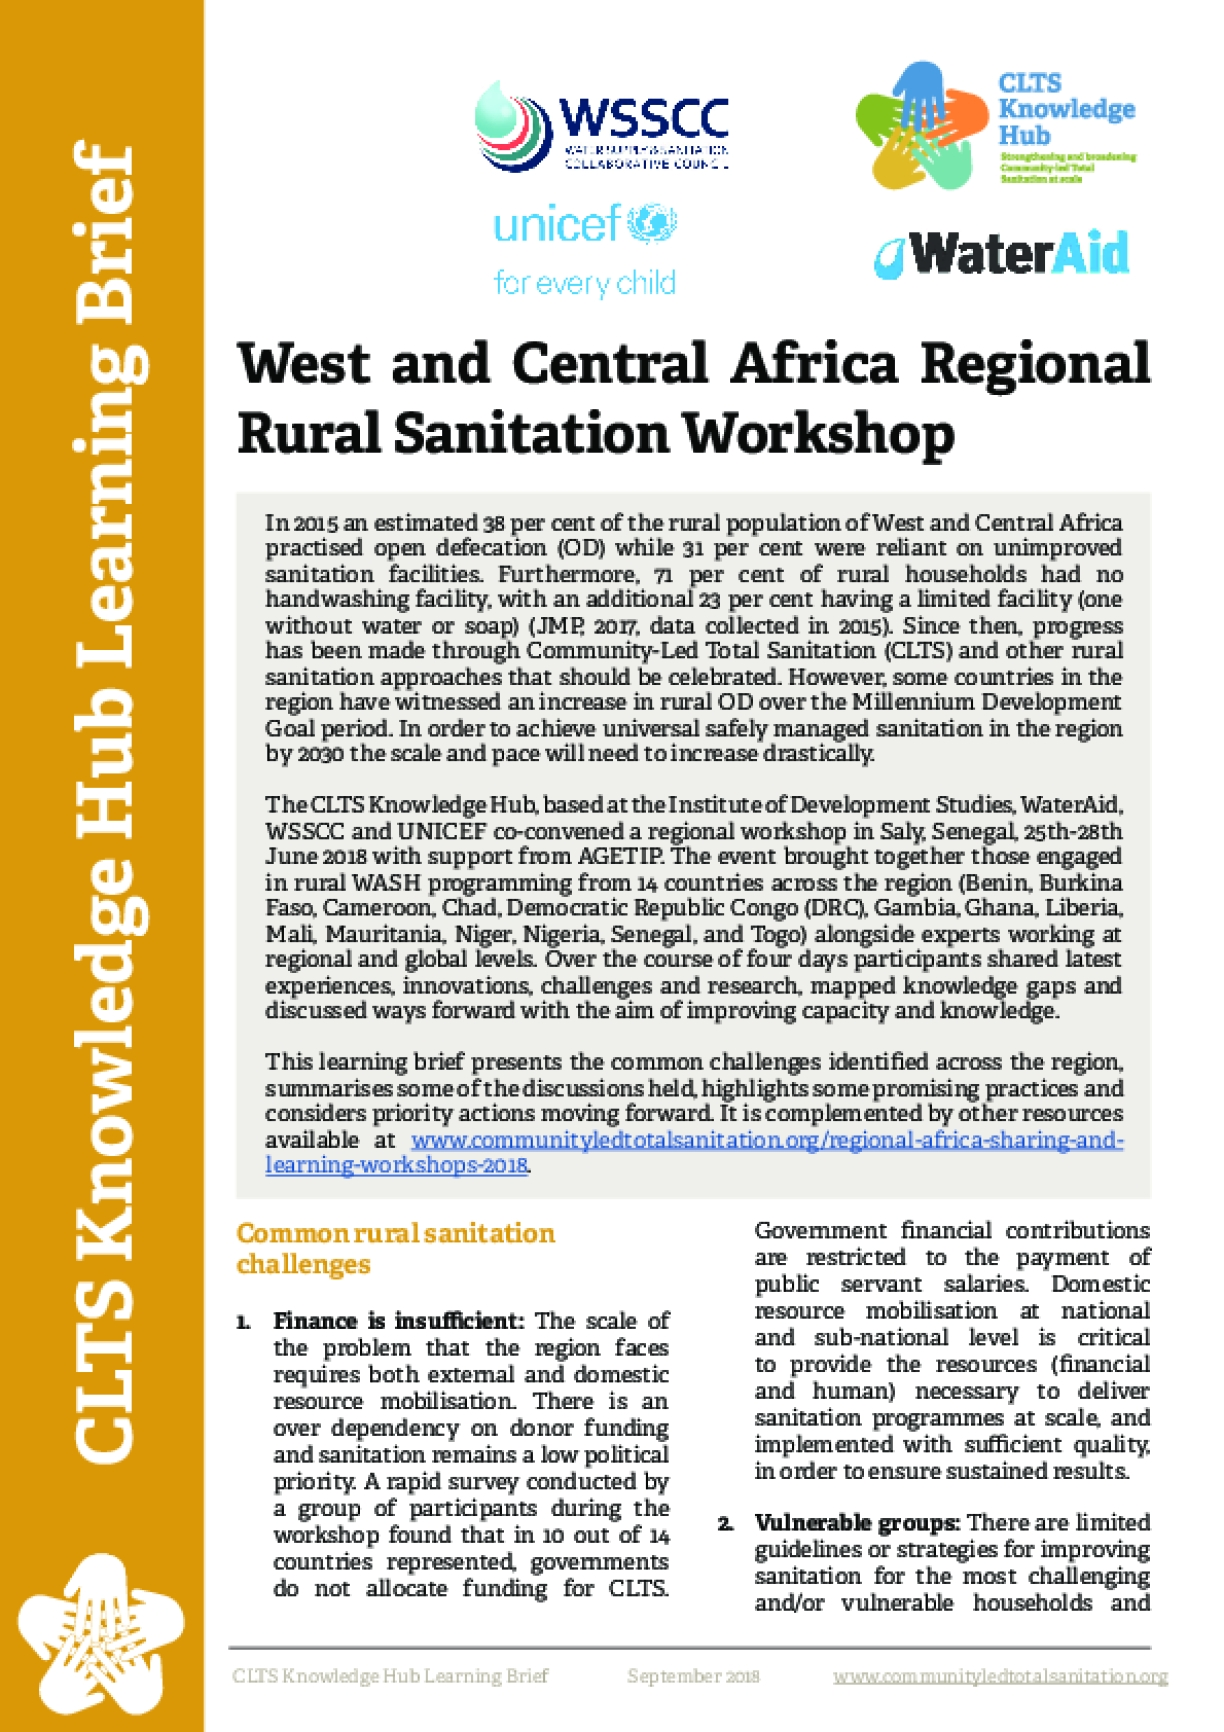 West and Central Africa Regional Rural Sanitation Workshop